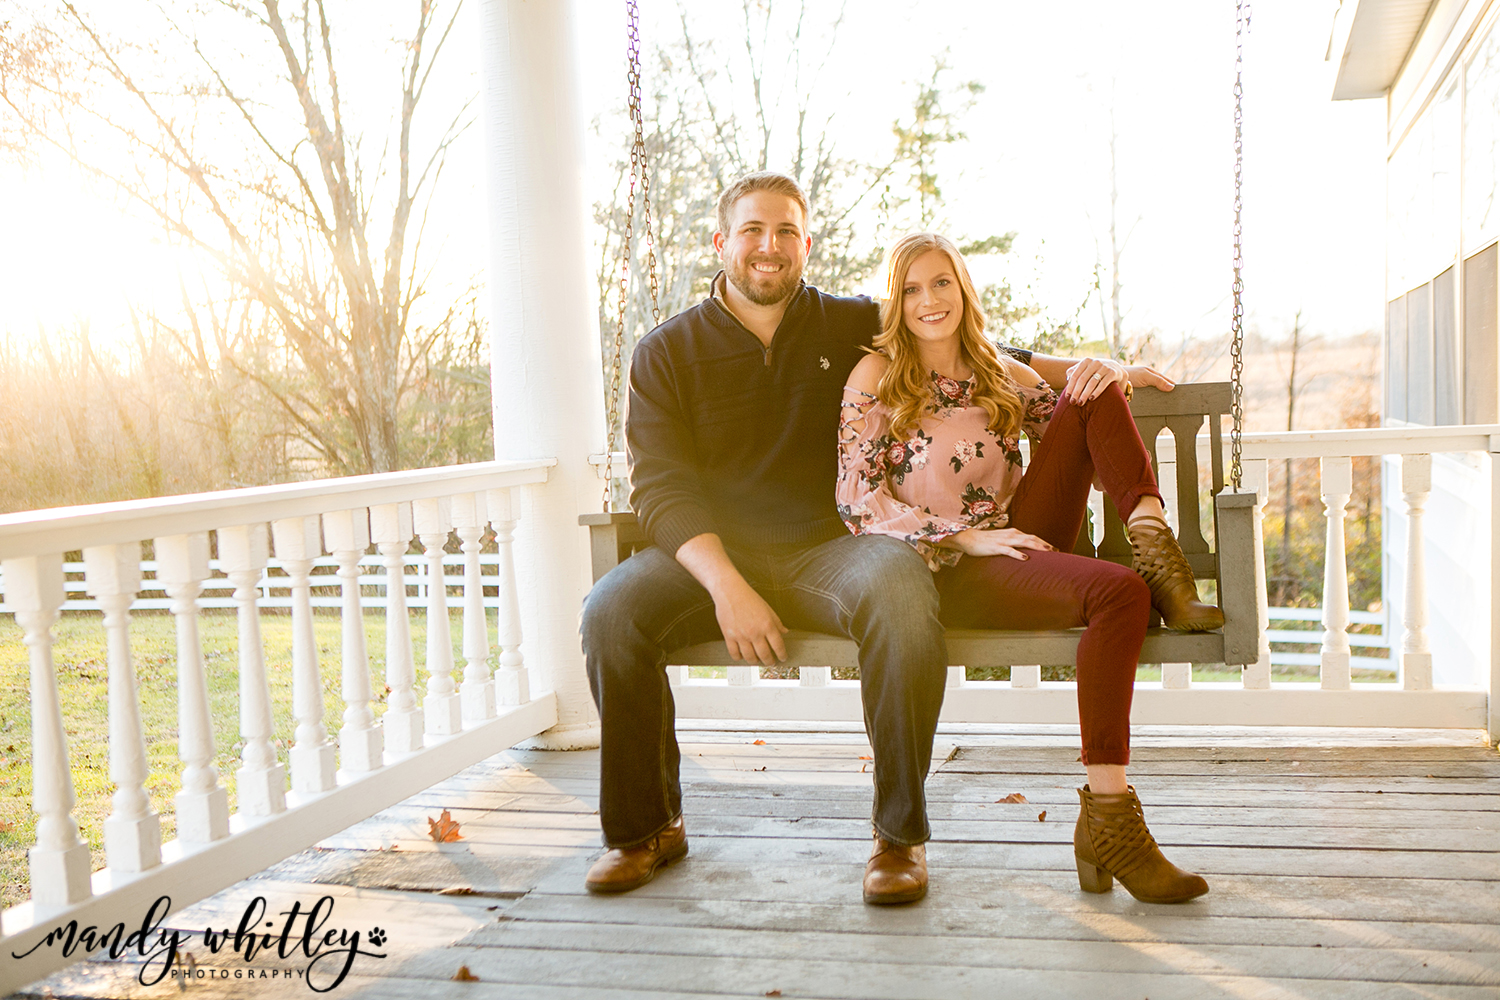 Mandy Whitley Wedding Photographer in TN